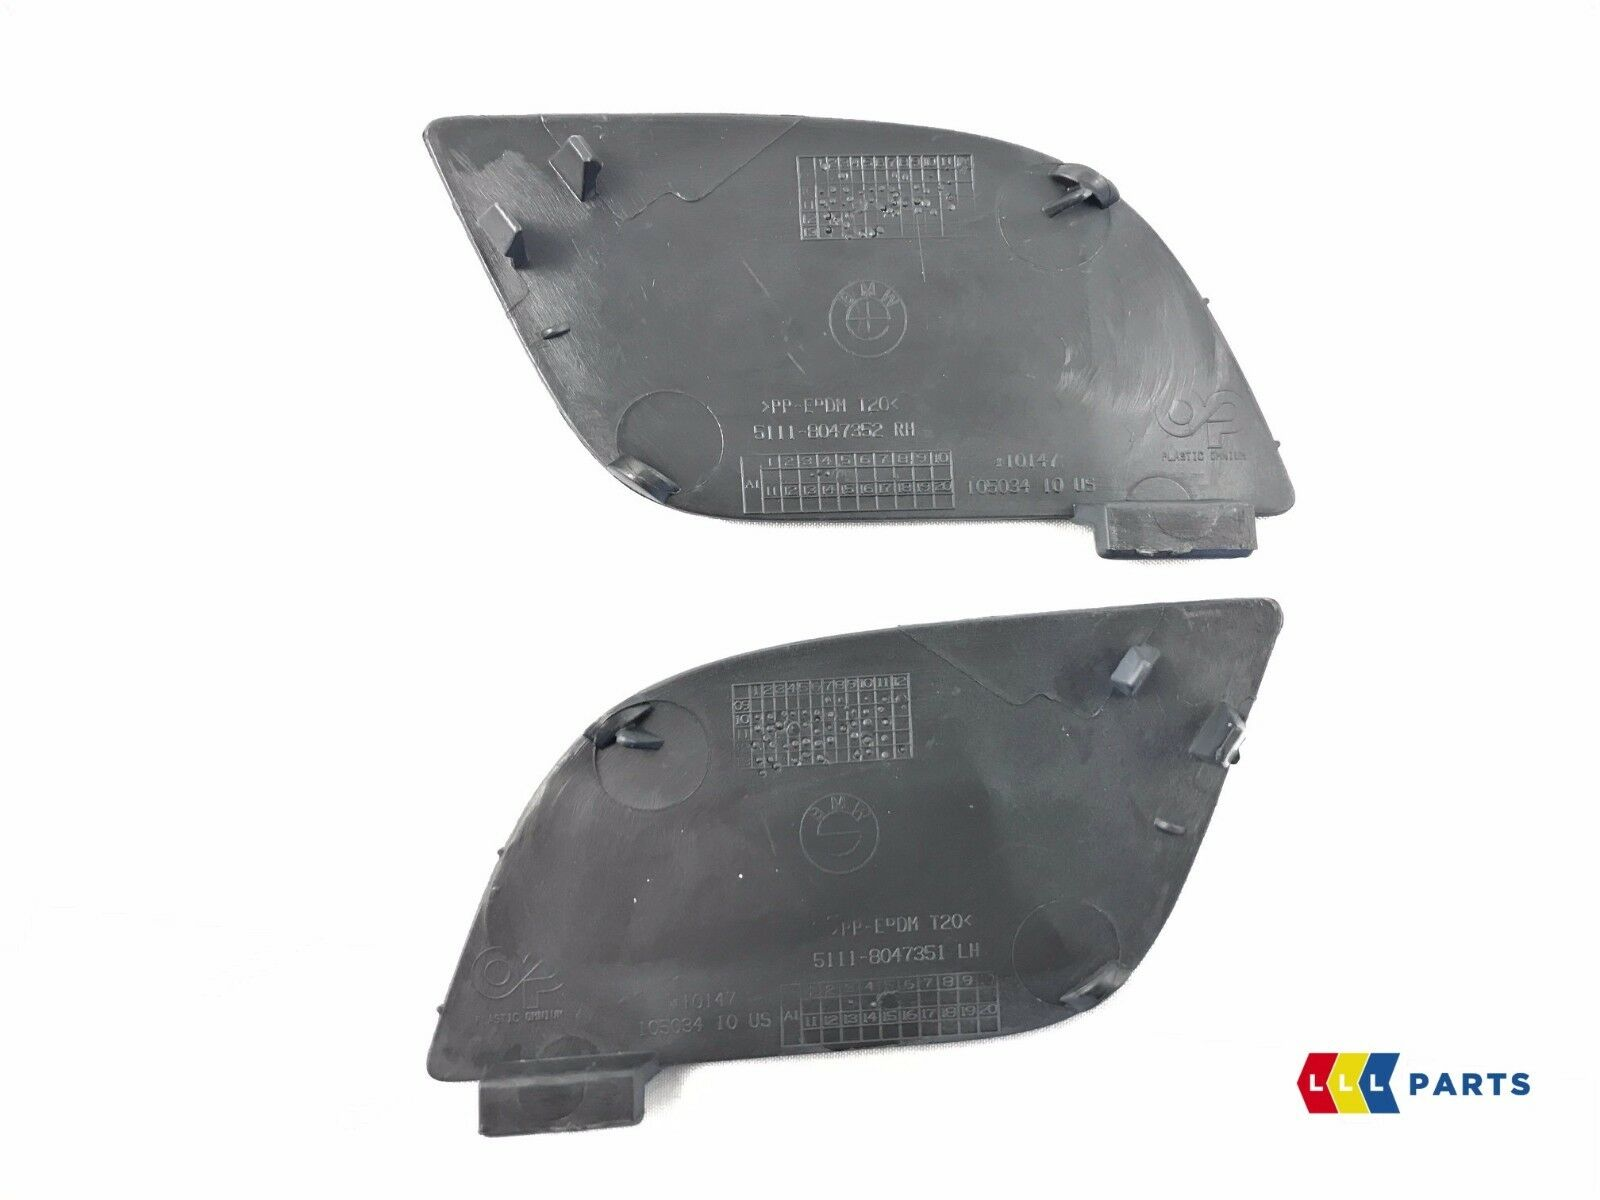 BMW Genuine X5 Series E70 10-13 Front M Sport Bumper Tow Cover Kit 5111 8050697